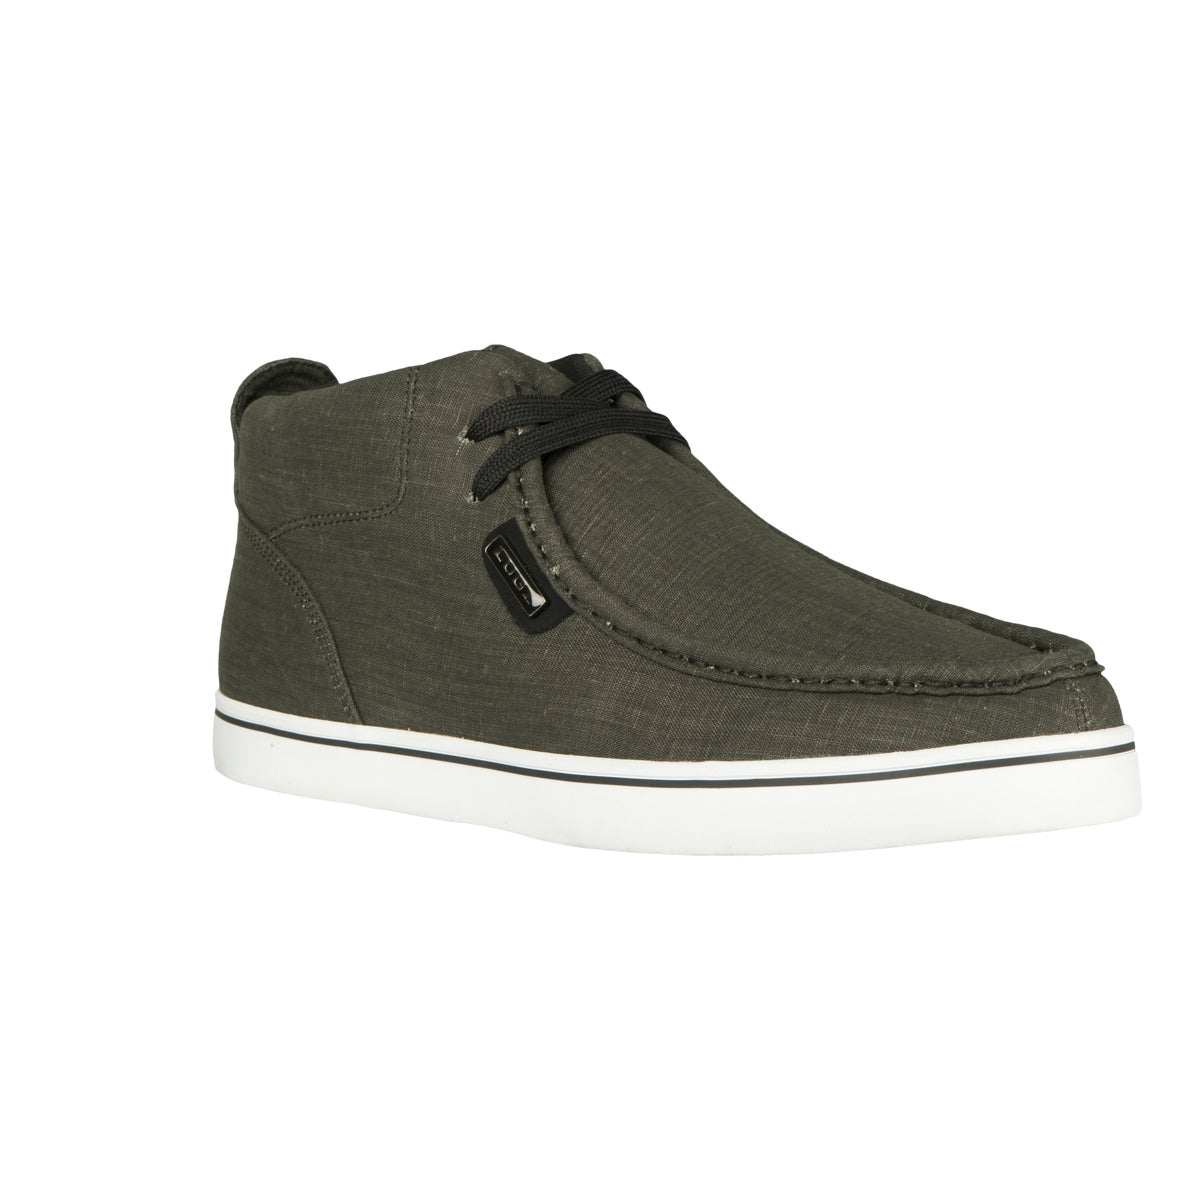 Lugz 'Strider' Charcoal Chambray Casual Boots